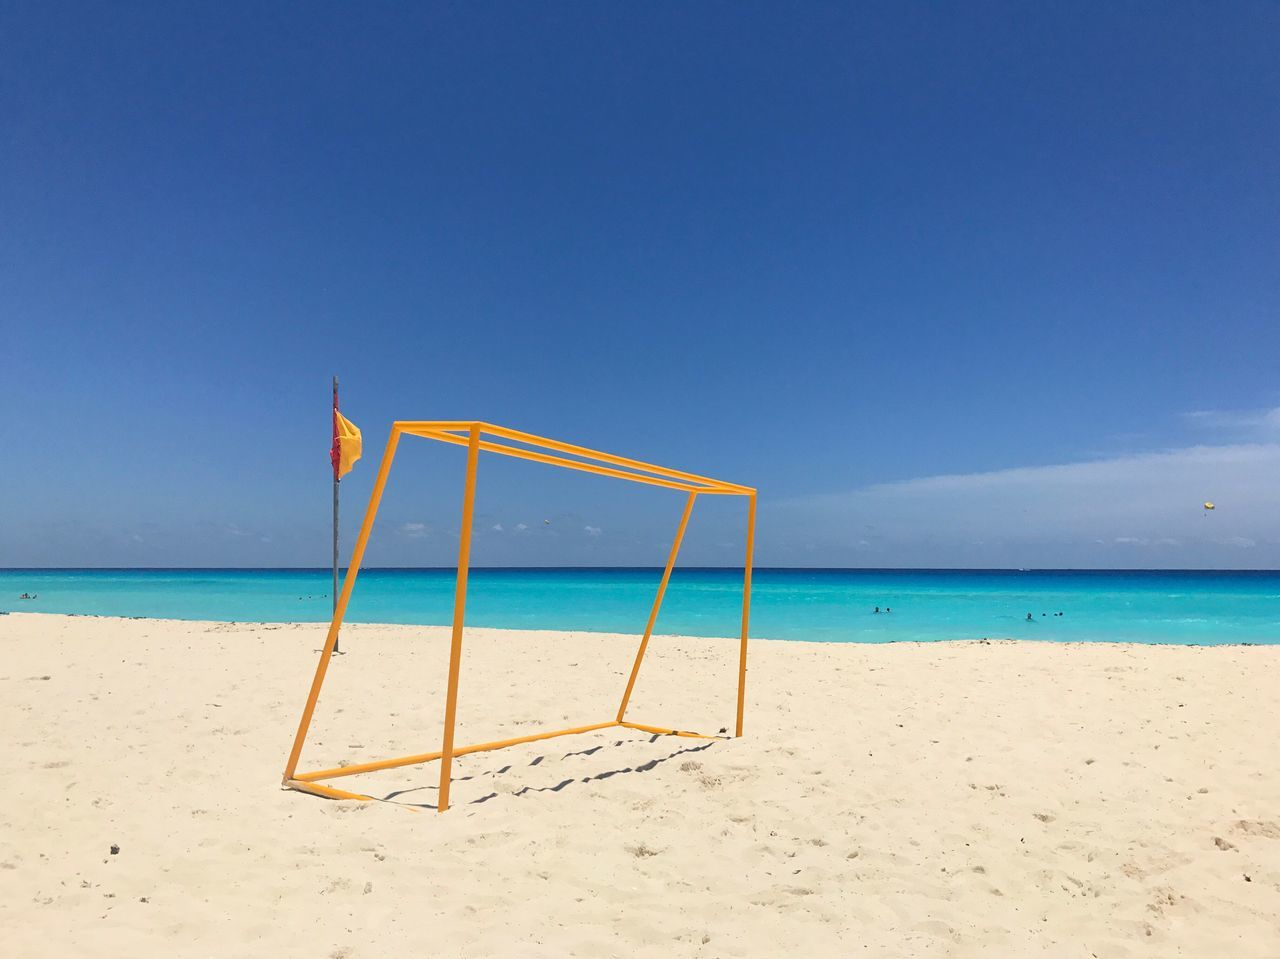 The weather 😭 Beach Beachphotography Sea Ocean Atlantic Ocean Soccer Football Summer Sunny Blue Blue Sky Yellow Colors Geometry Lines Nature Landscape Photography Cancun Mexico